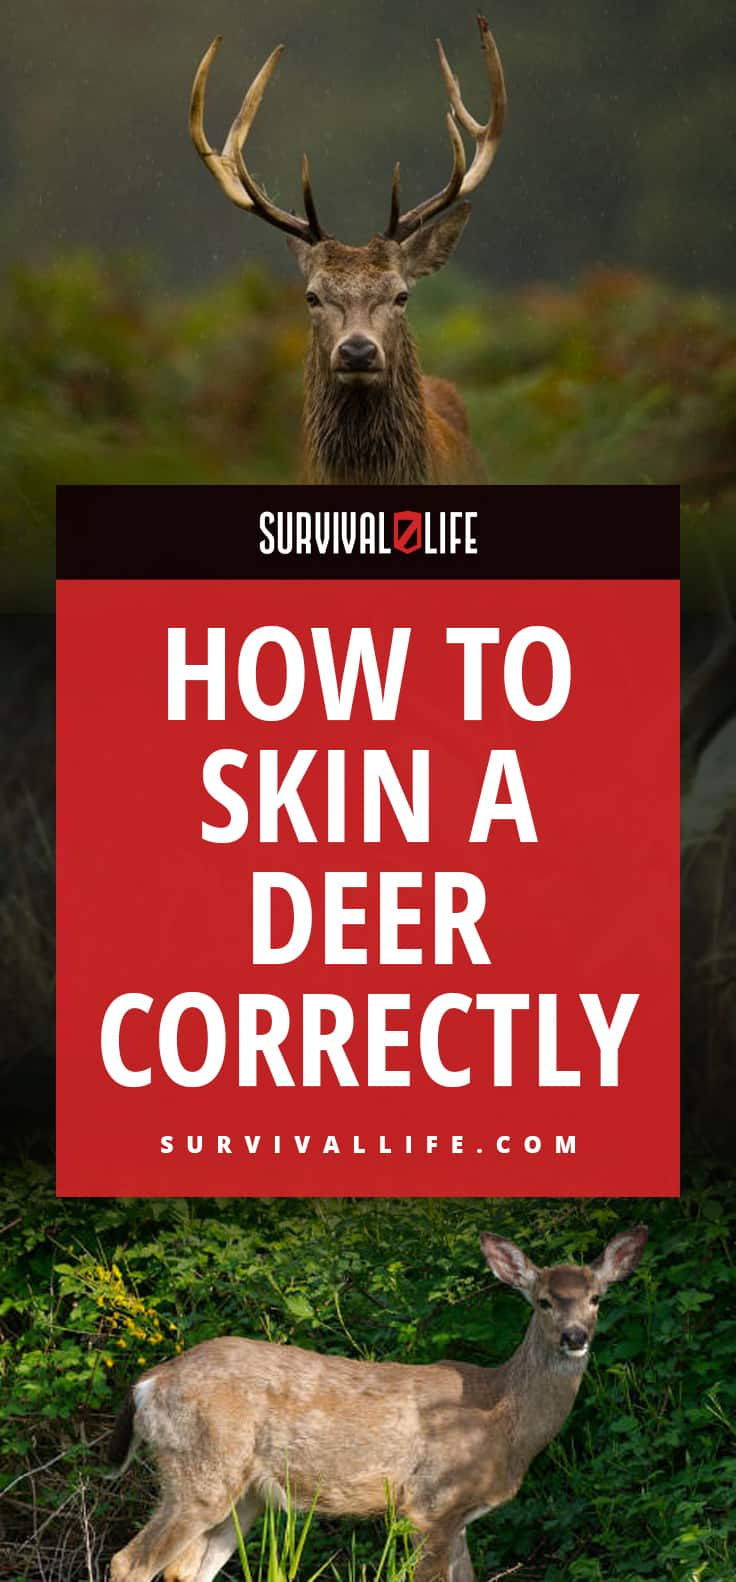 How To Skin A Deer Correctly